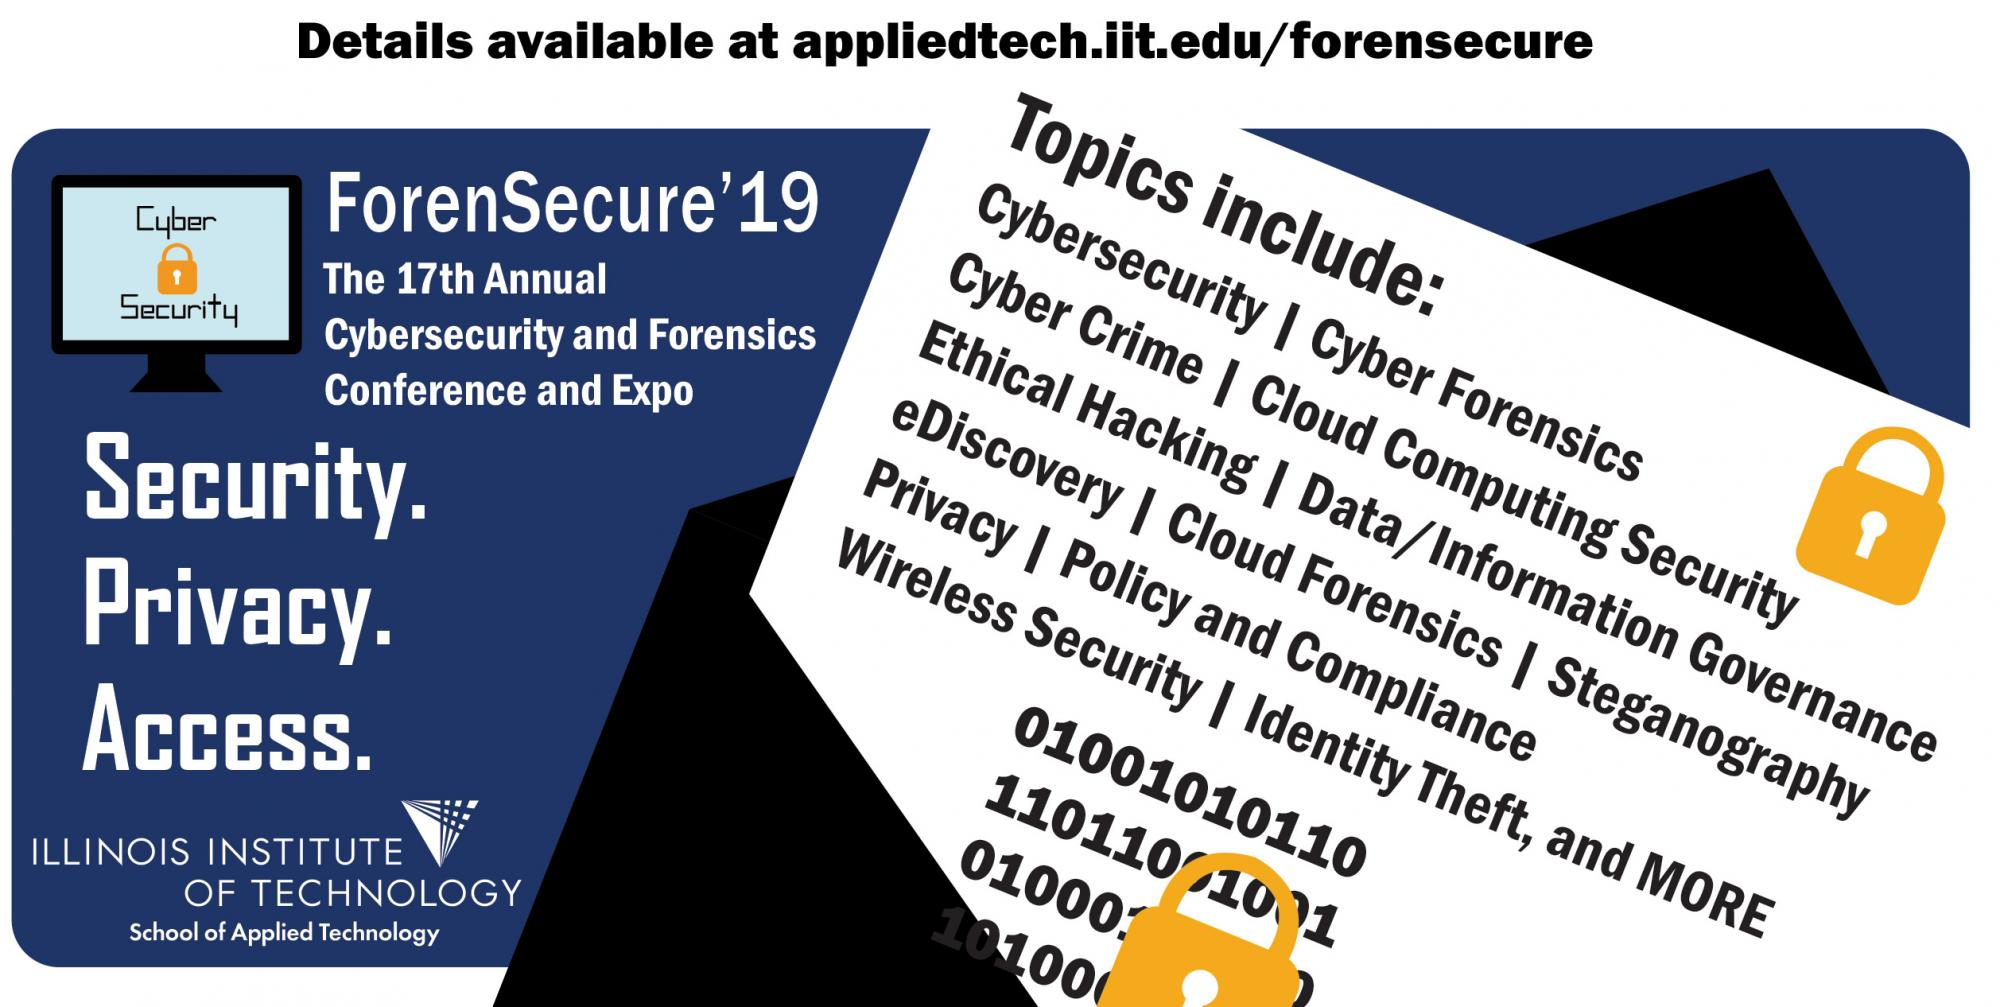 ForenSecure'19 Posters